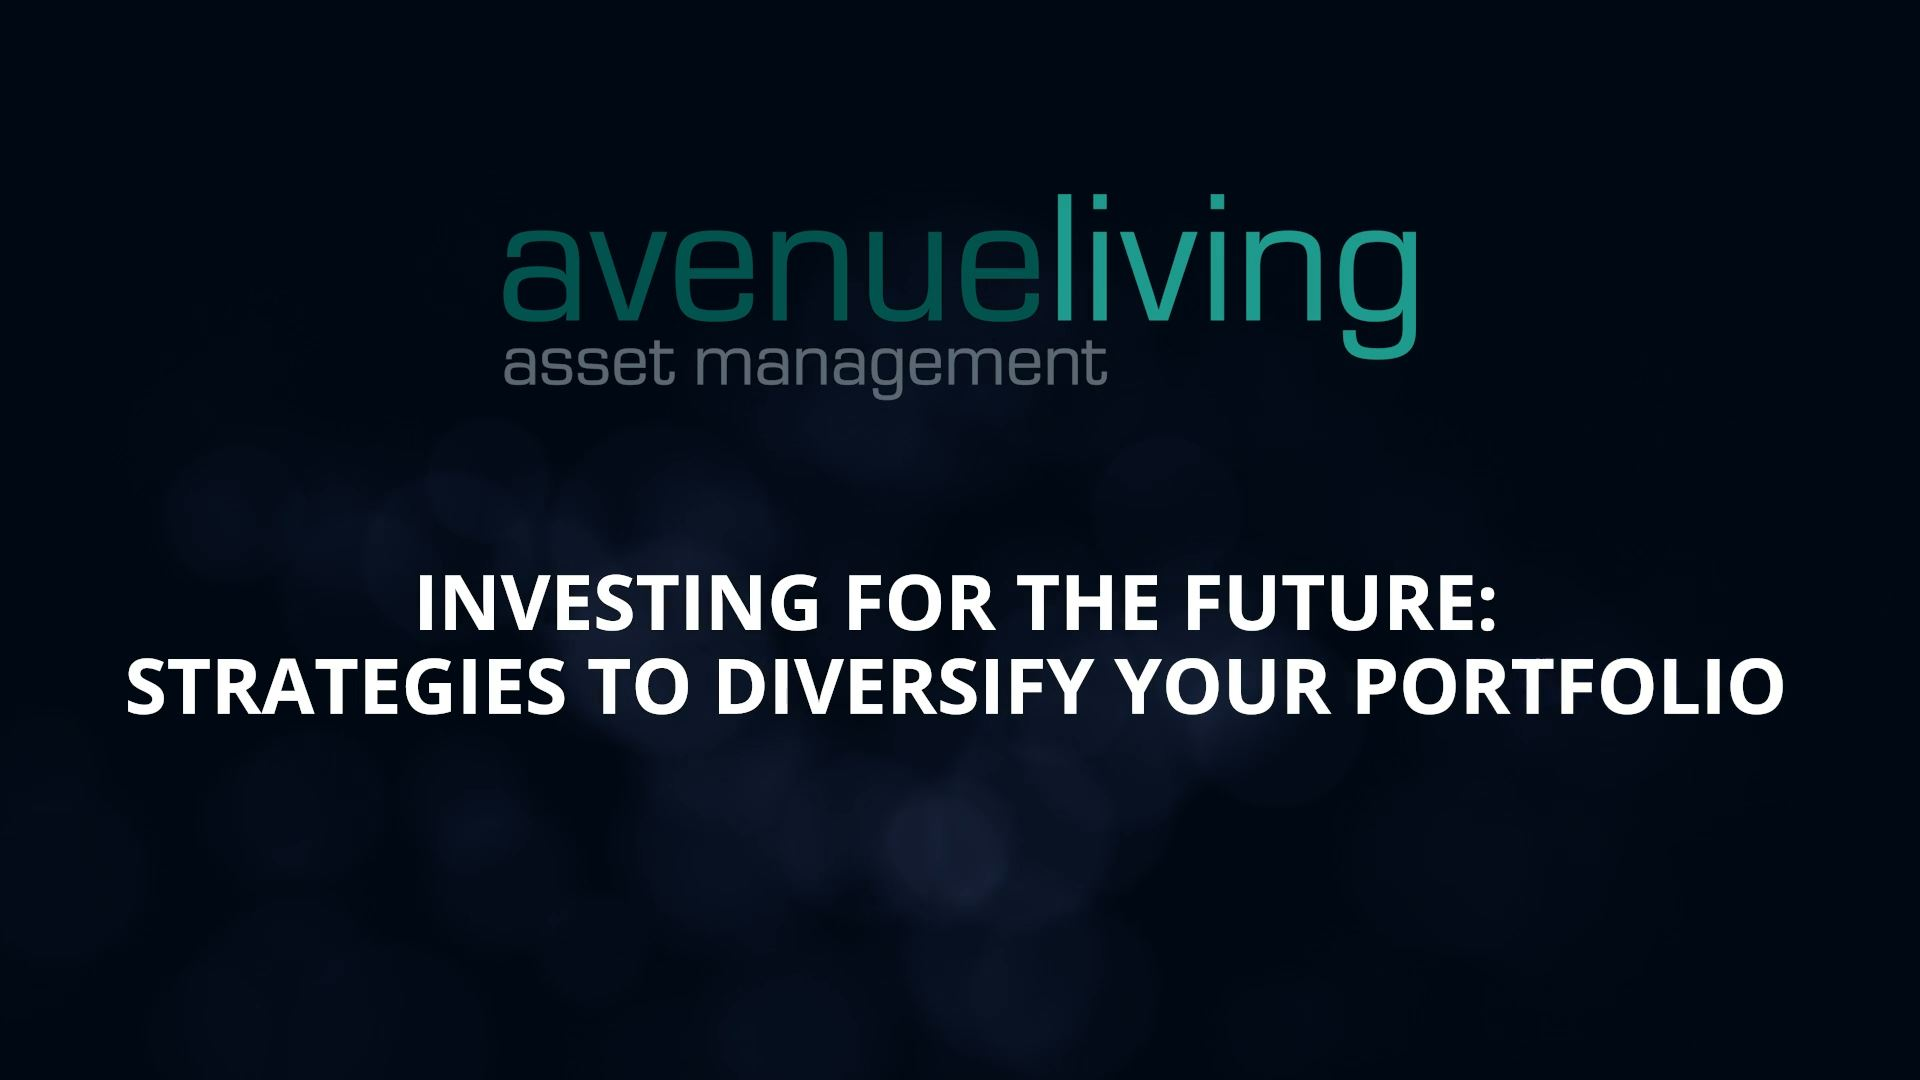 Investing for the future: Strategies to diversify your portfolio